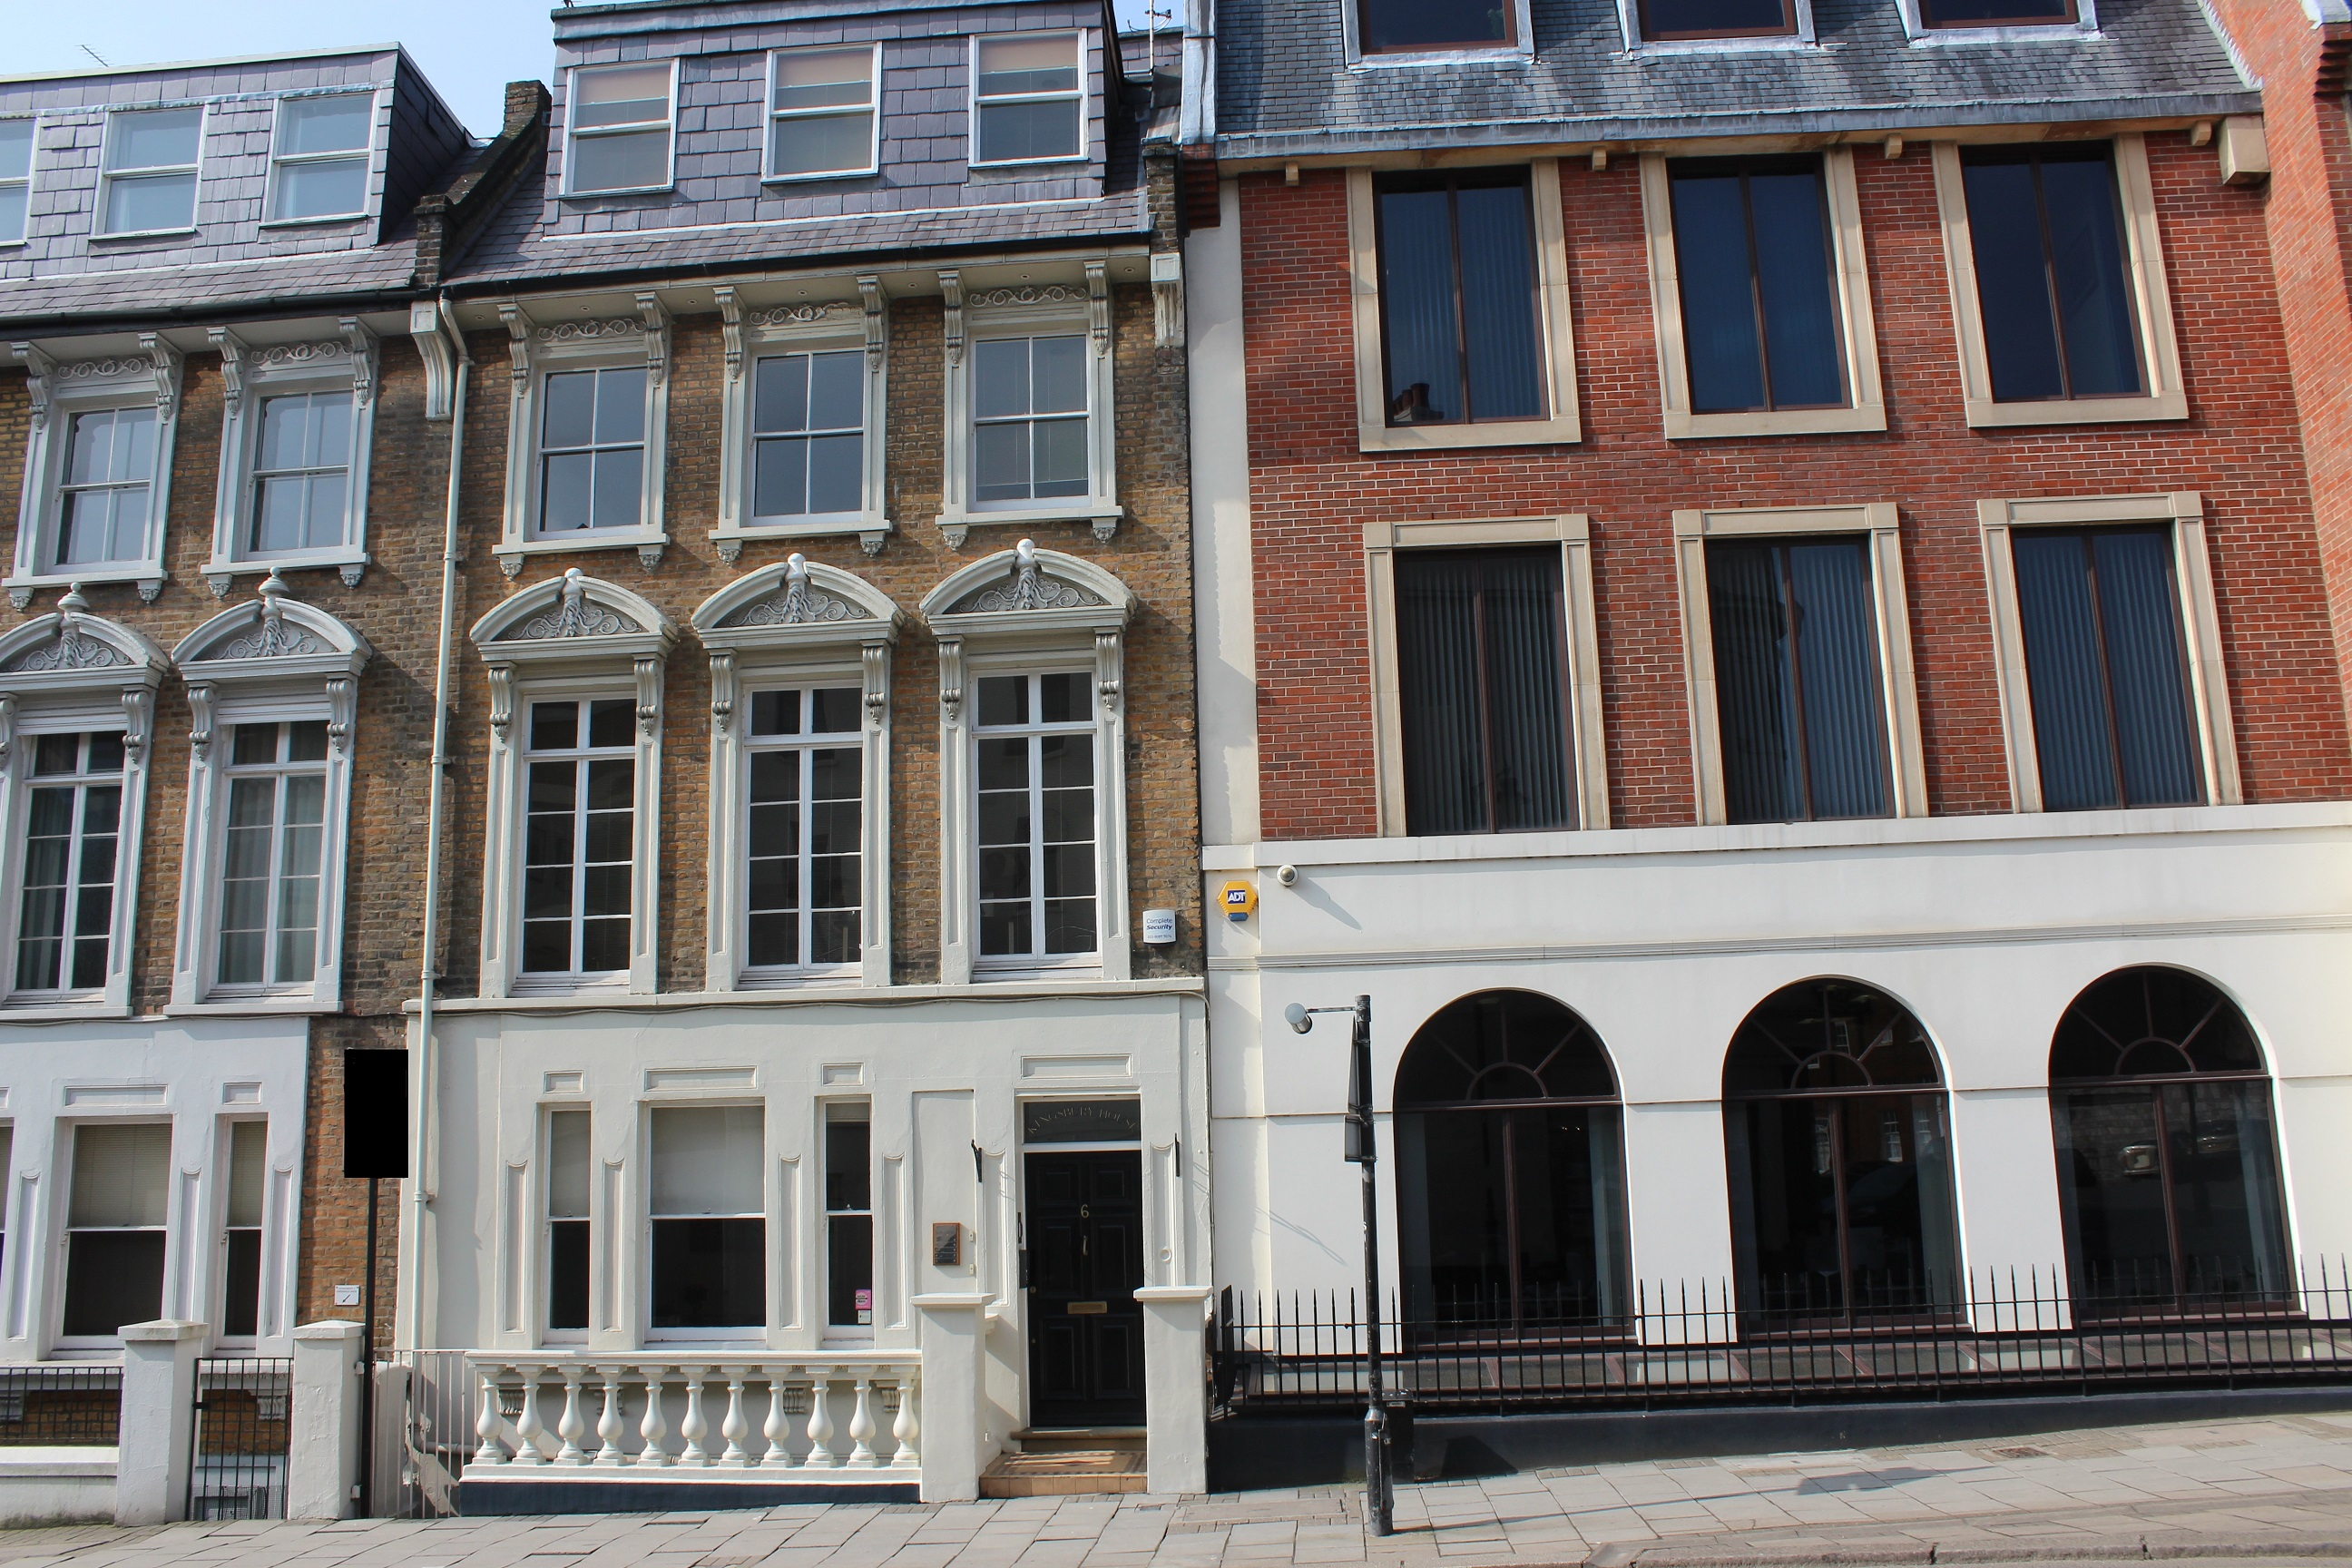 Kingsbury House Sheet Street Windsor SL4 1BG – Newly Renovated Quality Town Centre Offices To Let